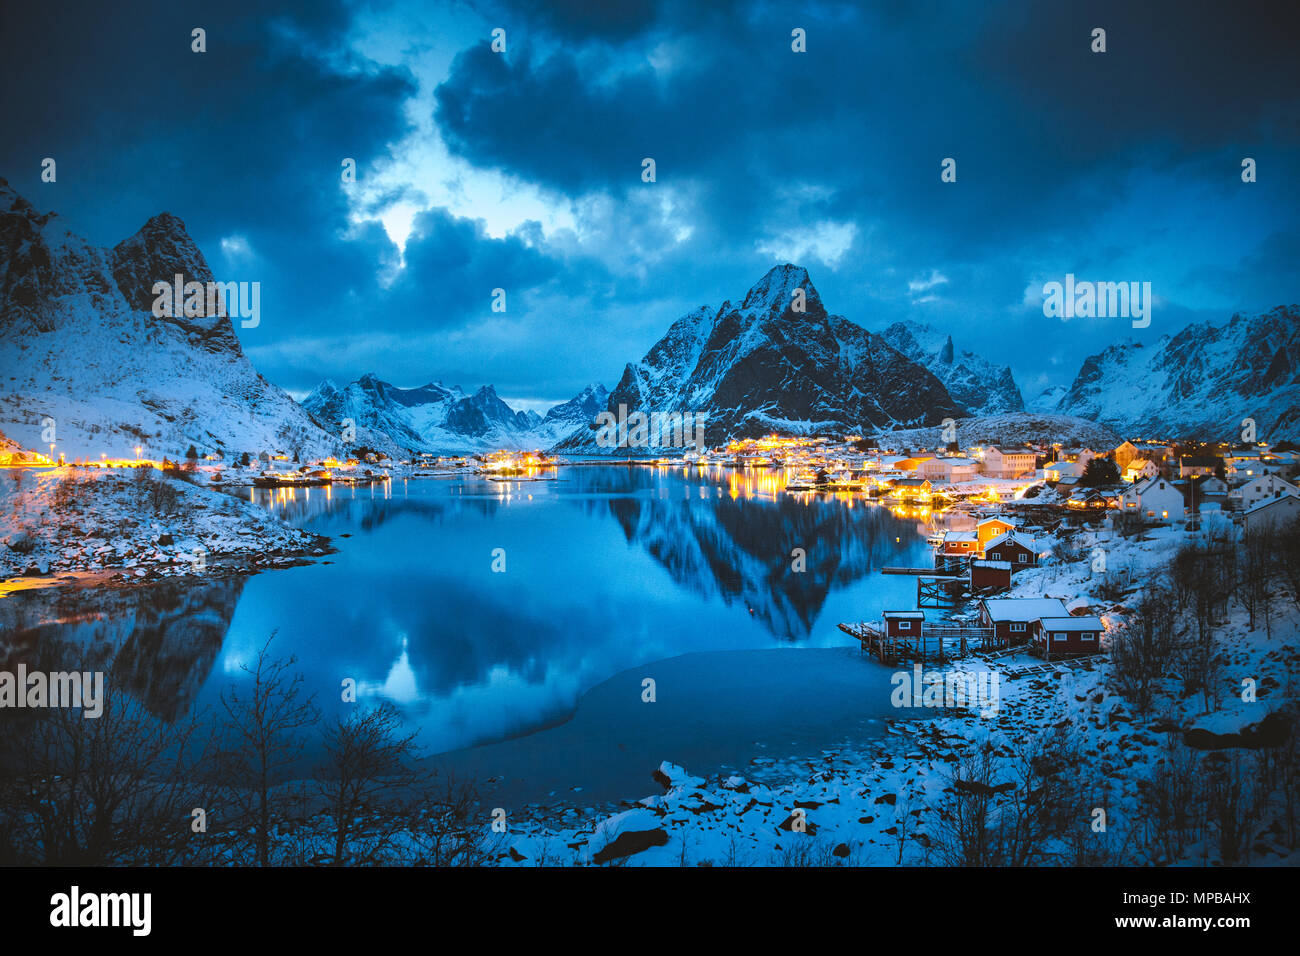 Classic view of the famous fishing village of Reine with Olstinden peak in the background in magical winter evening twilight, Lofoten Islands, Norway - Stock Image